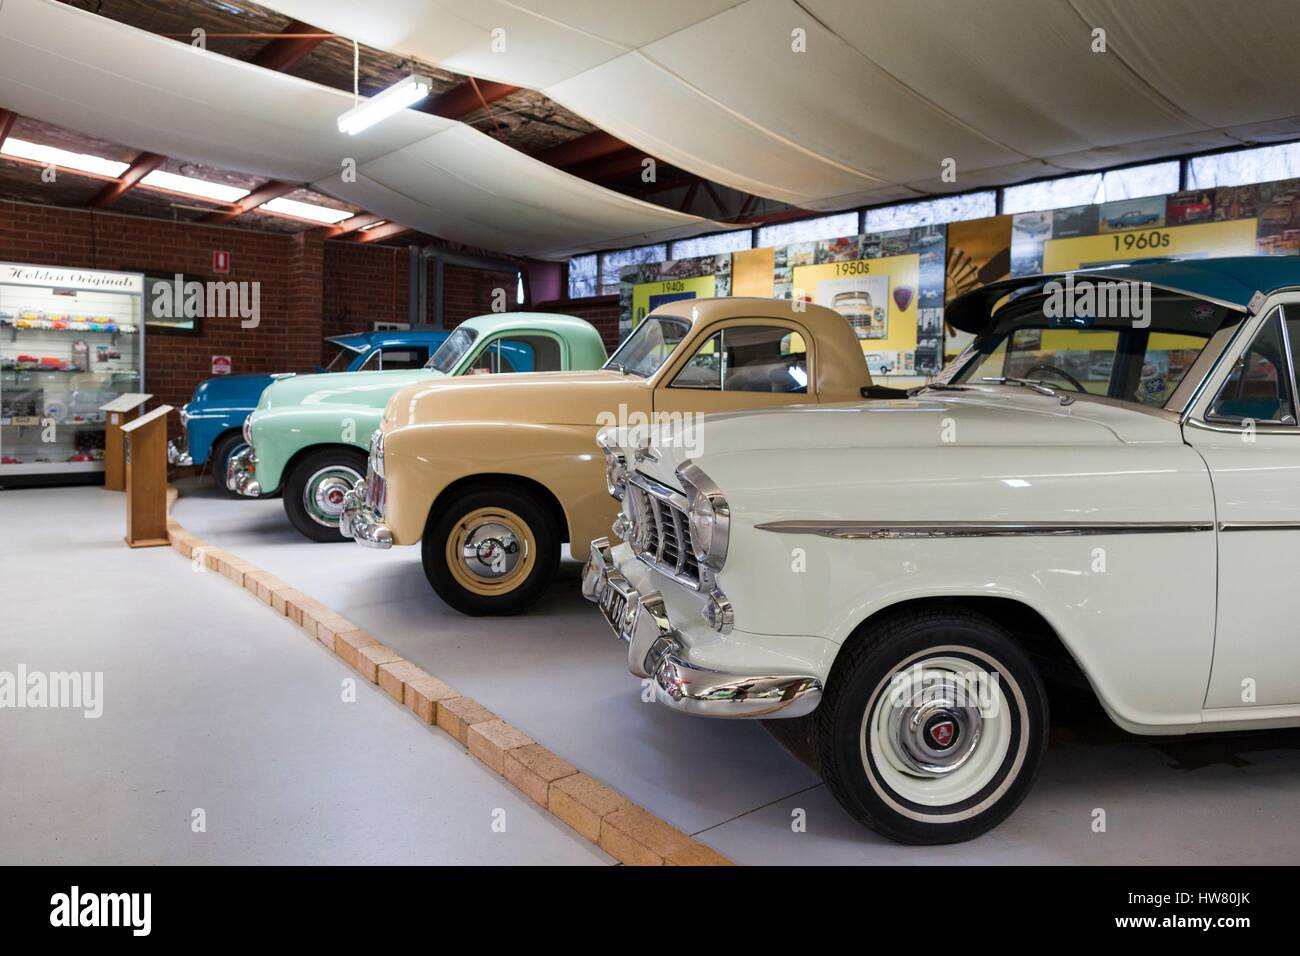 Holden Cars Stock Photos & Holden Cars Stock Images - Alamy